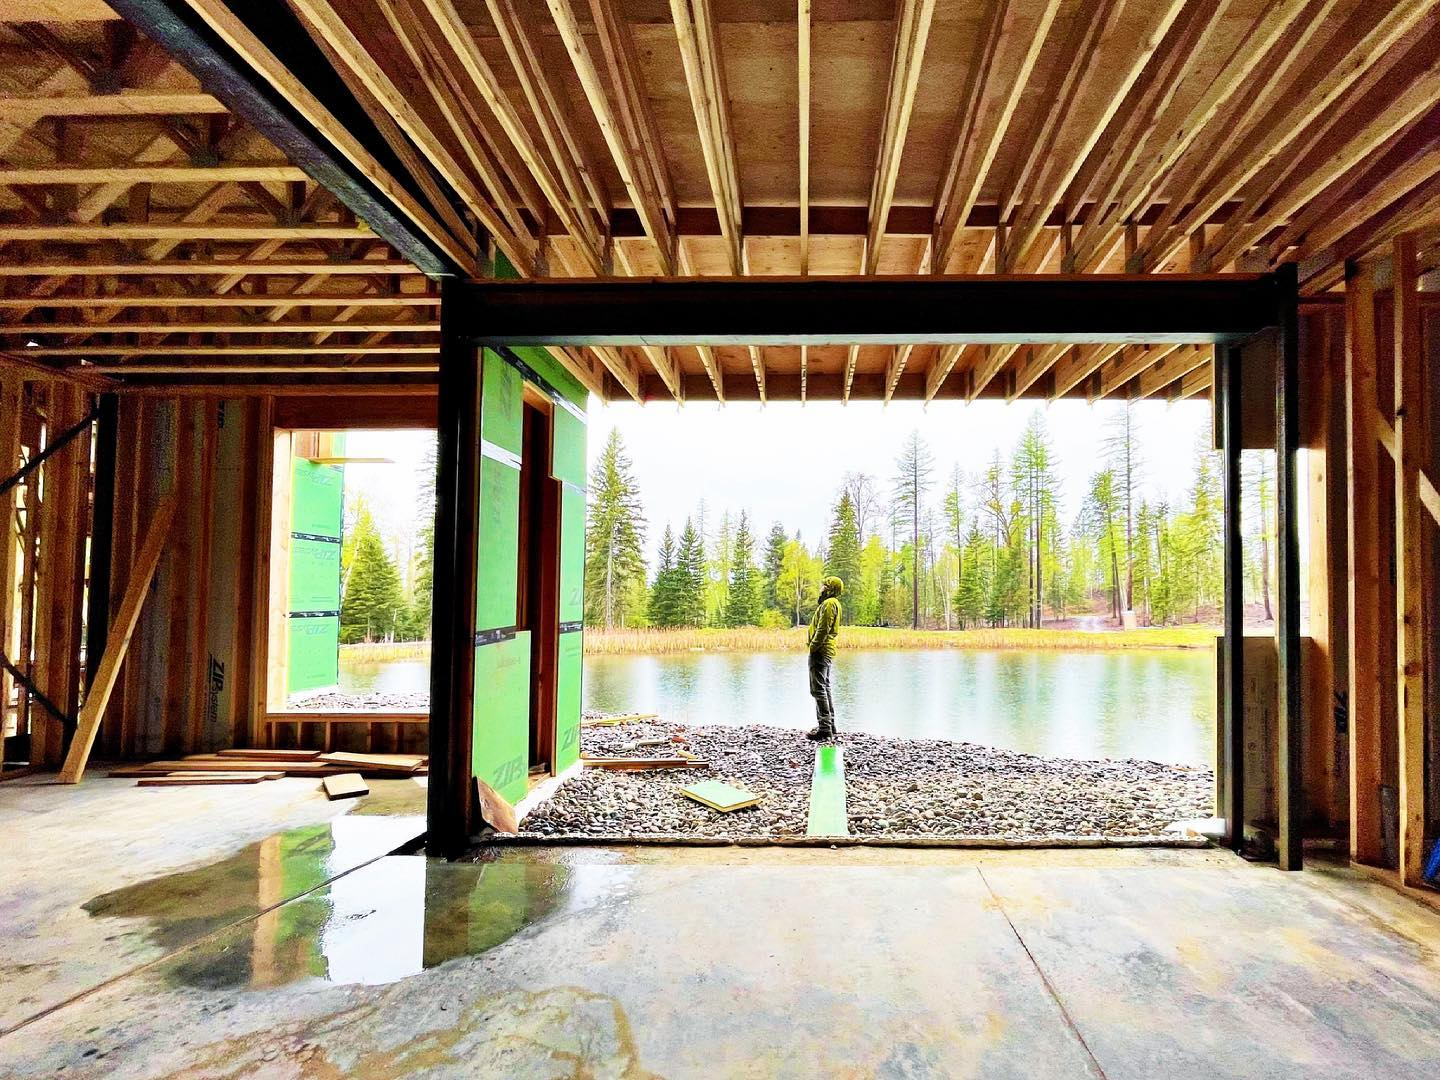 We could almost float out of this house today in this rain...but instead we are looking at how to set these massive windows. The project of the next 2 weeks! whitefish custom home builder